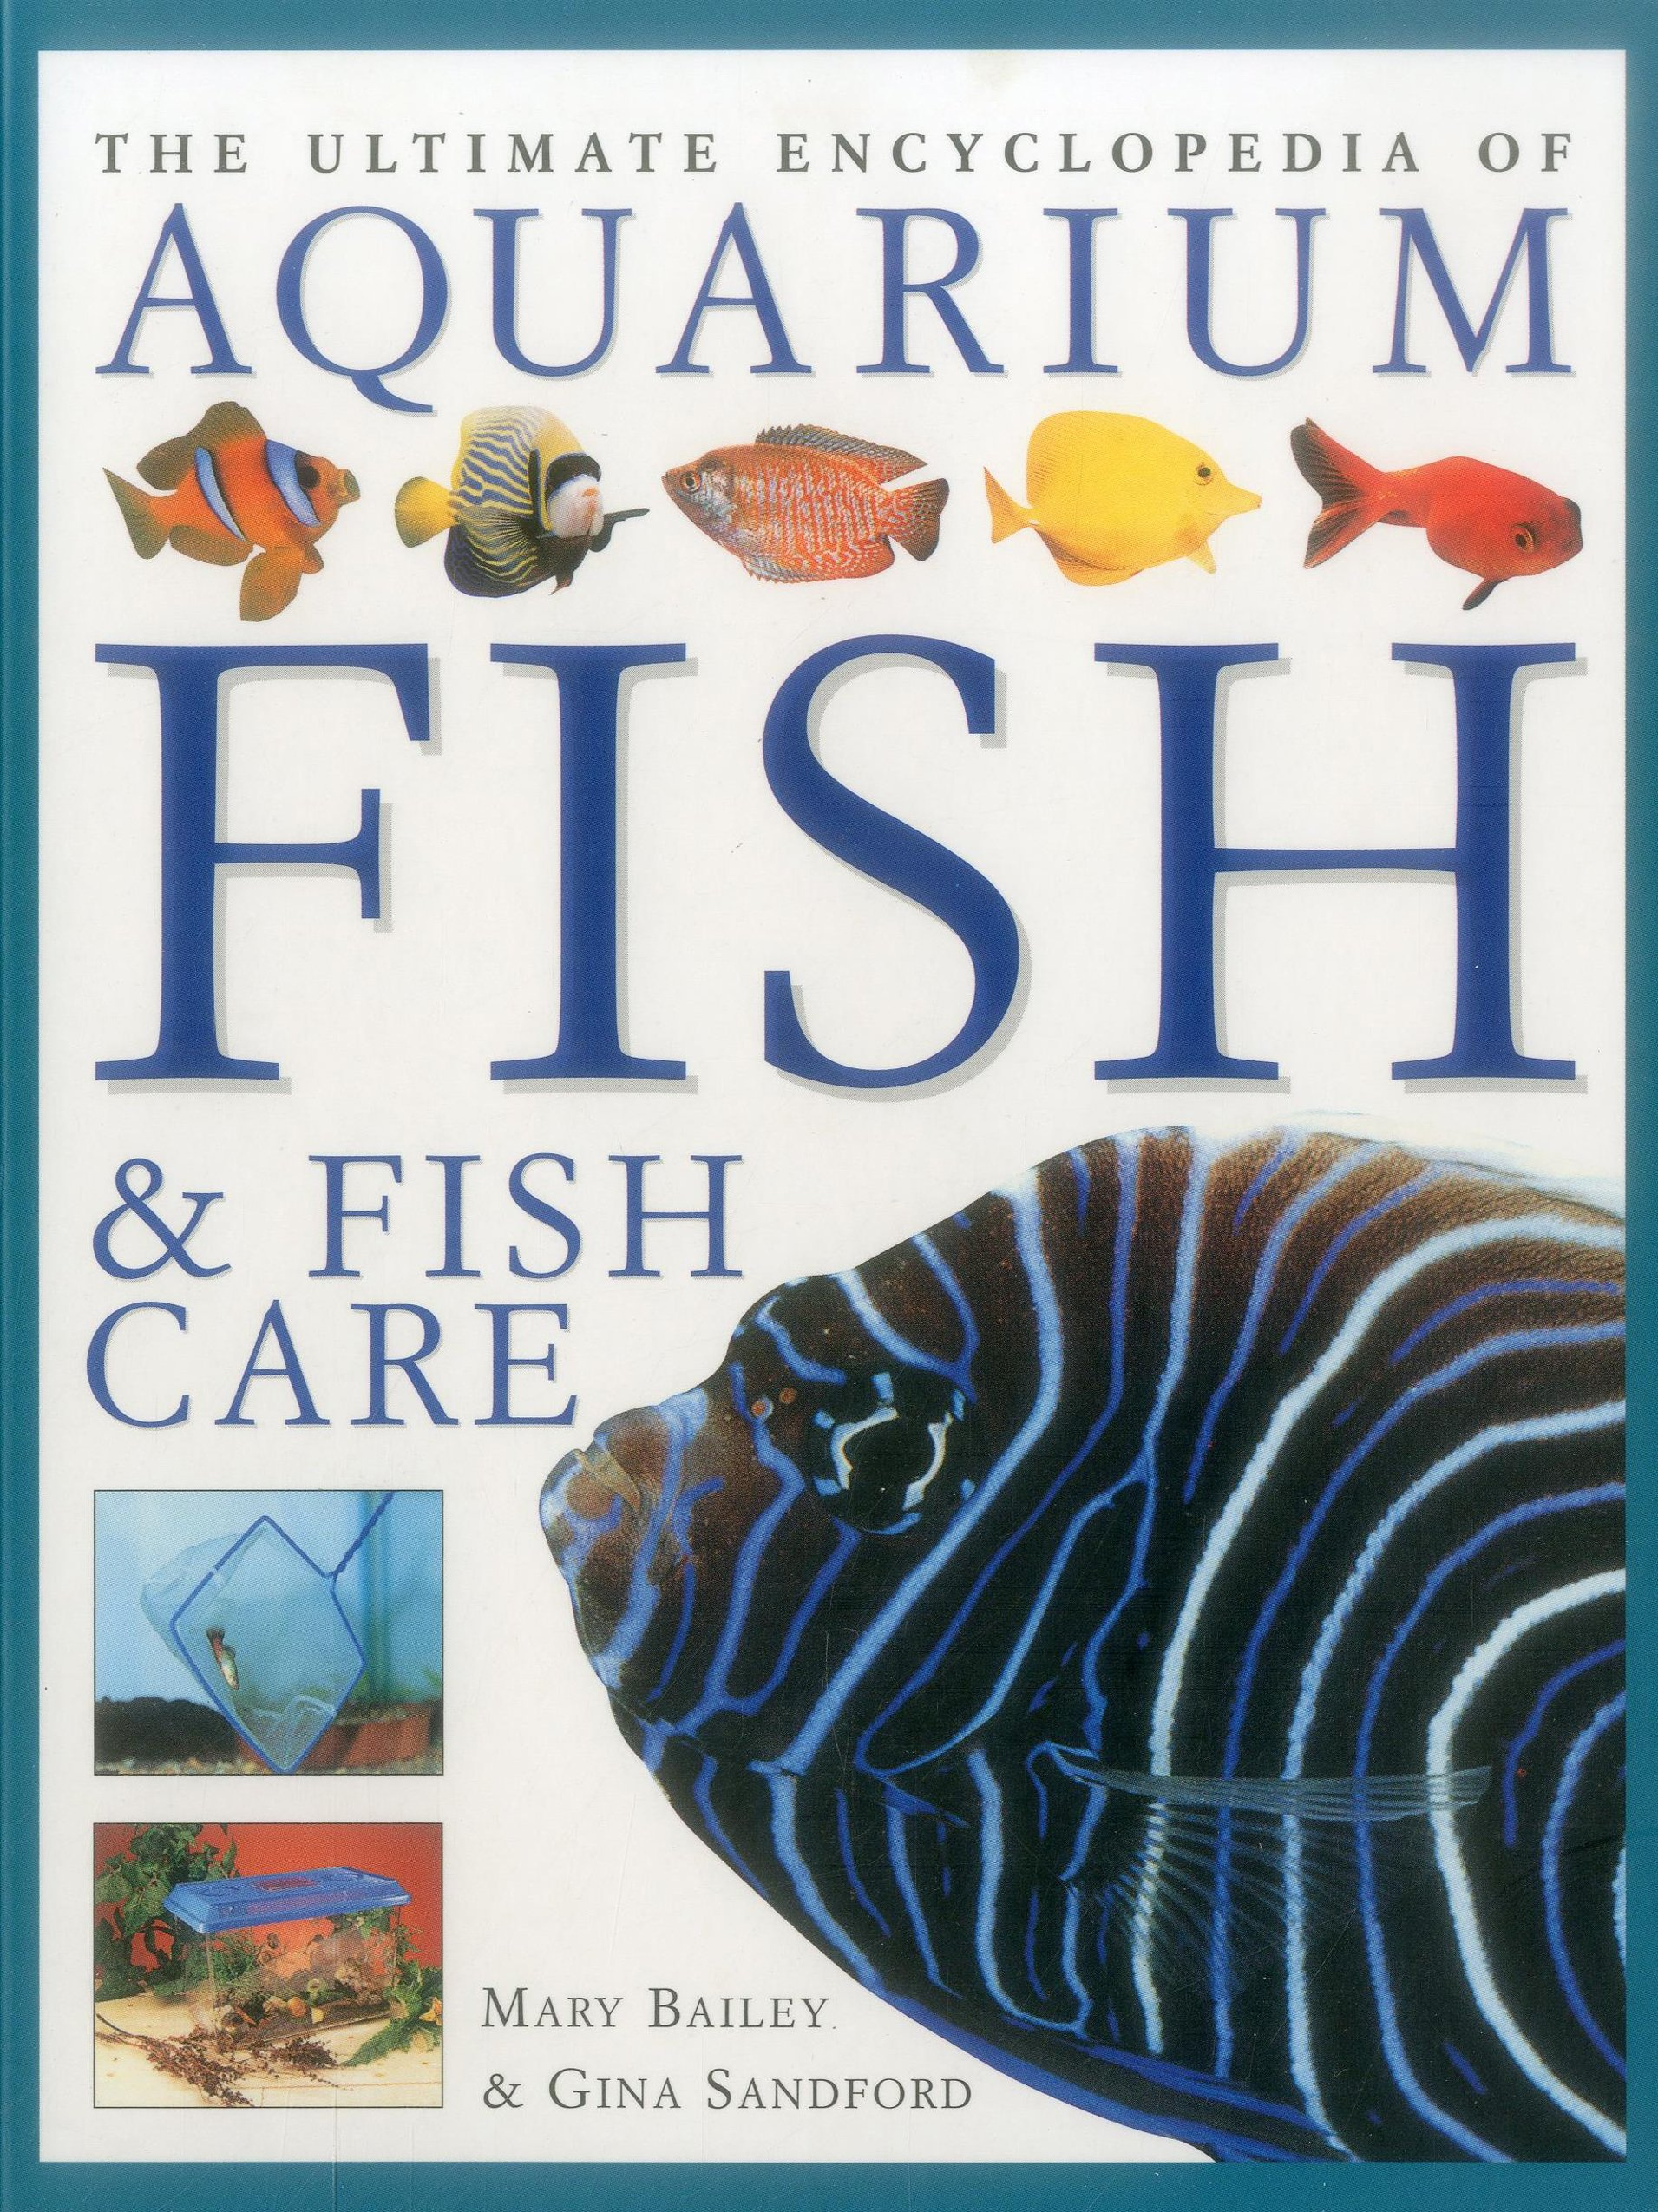 Fish aquarium guide - The Ultimate Encyclopedia Of Aquarium Fish Fish Care A Definitive Guide To Identifying And Keeping Freshwater And Marine Fishes Mary Bailey